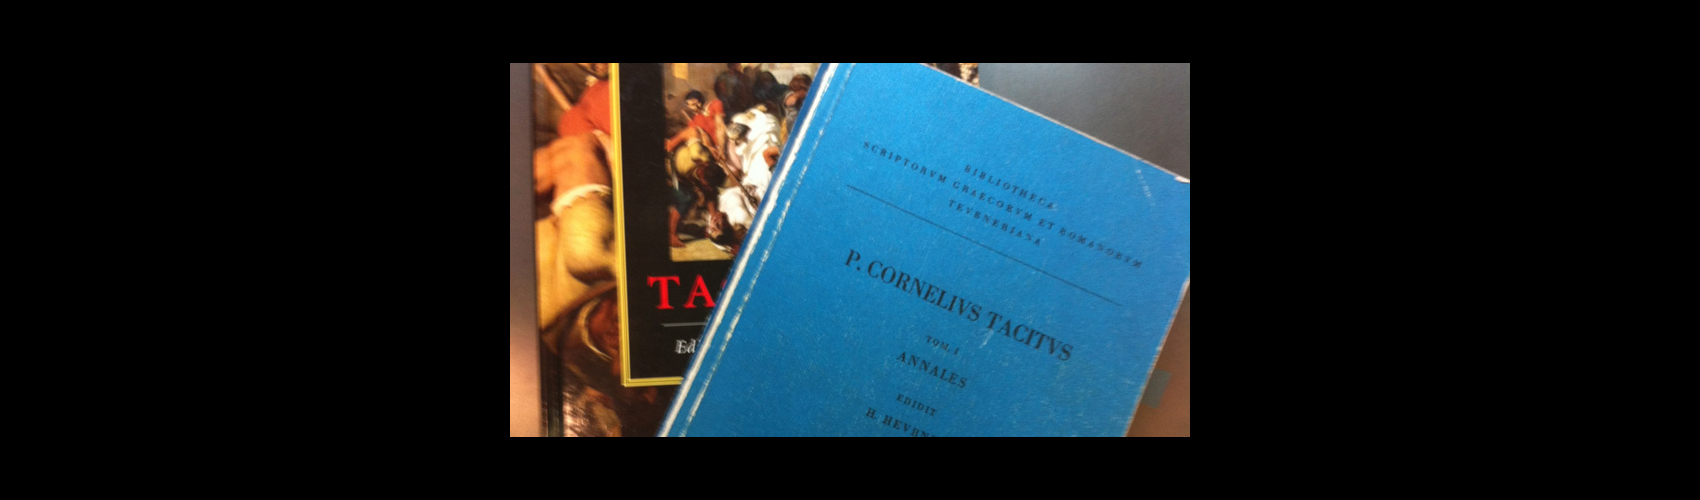 Two Tacitus books